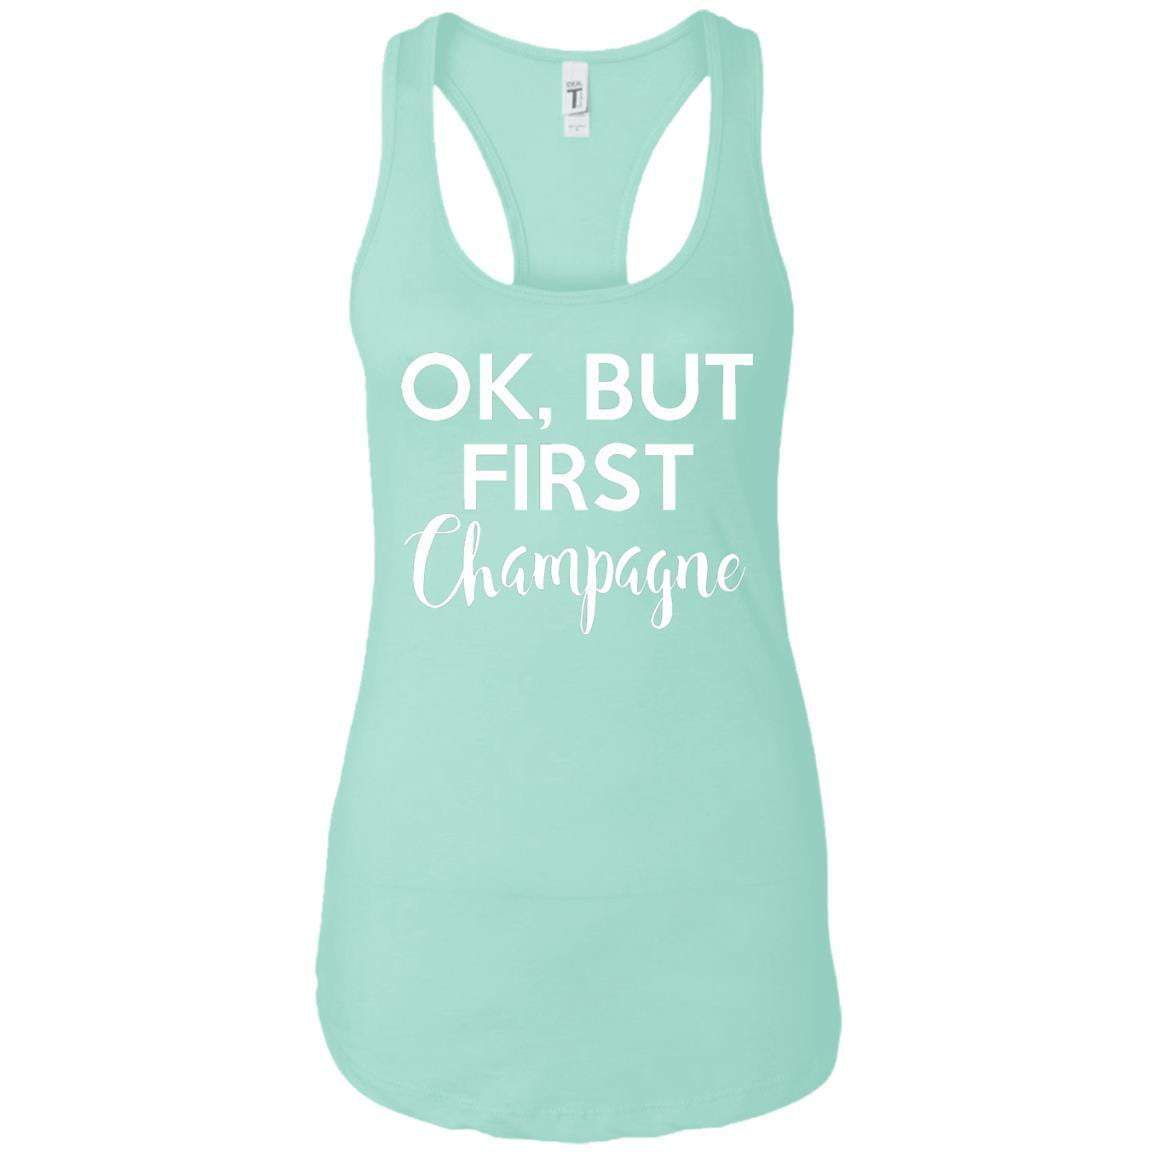 First Champagne Women's Racerback Tank